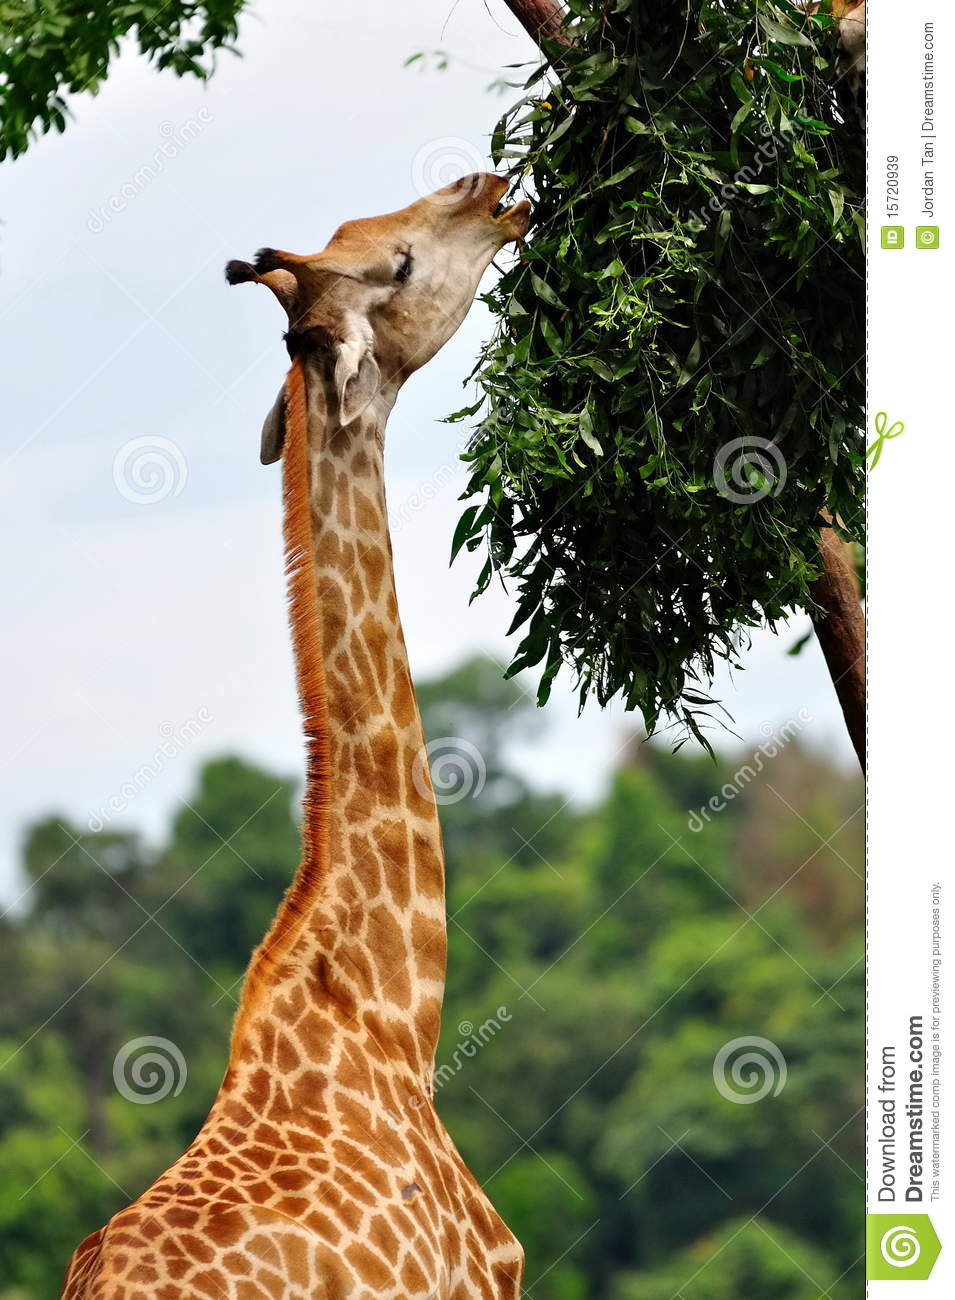 Young Giraffe Eating Leaves Royalty Free Stock Images - Image ...